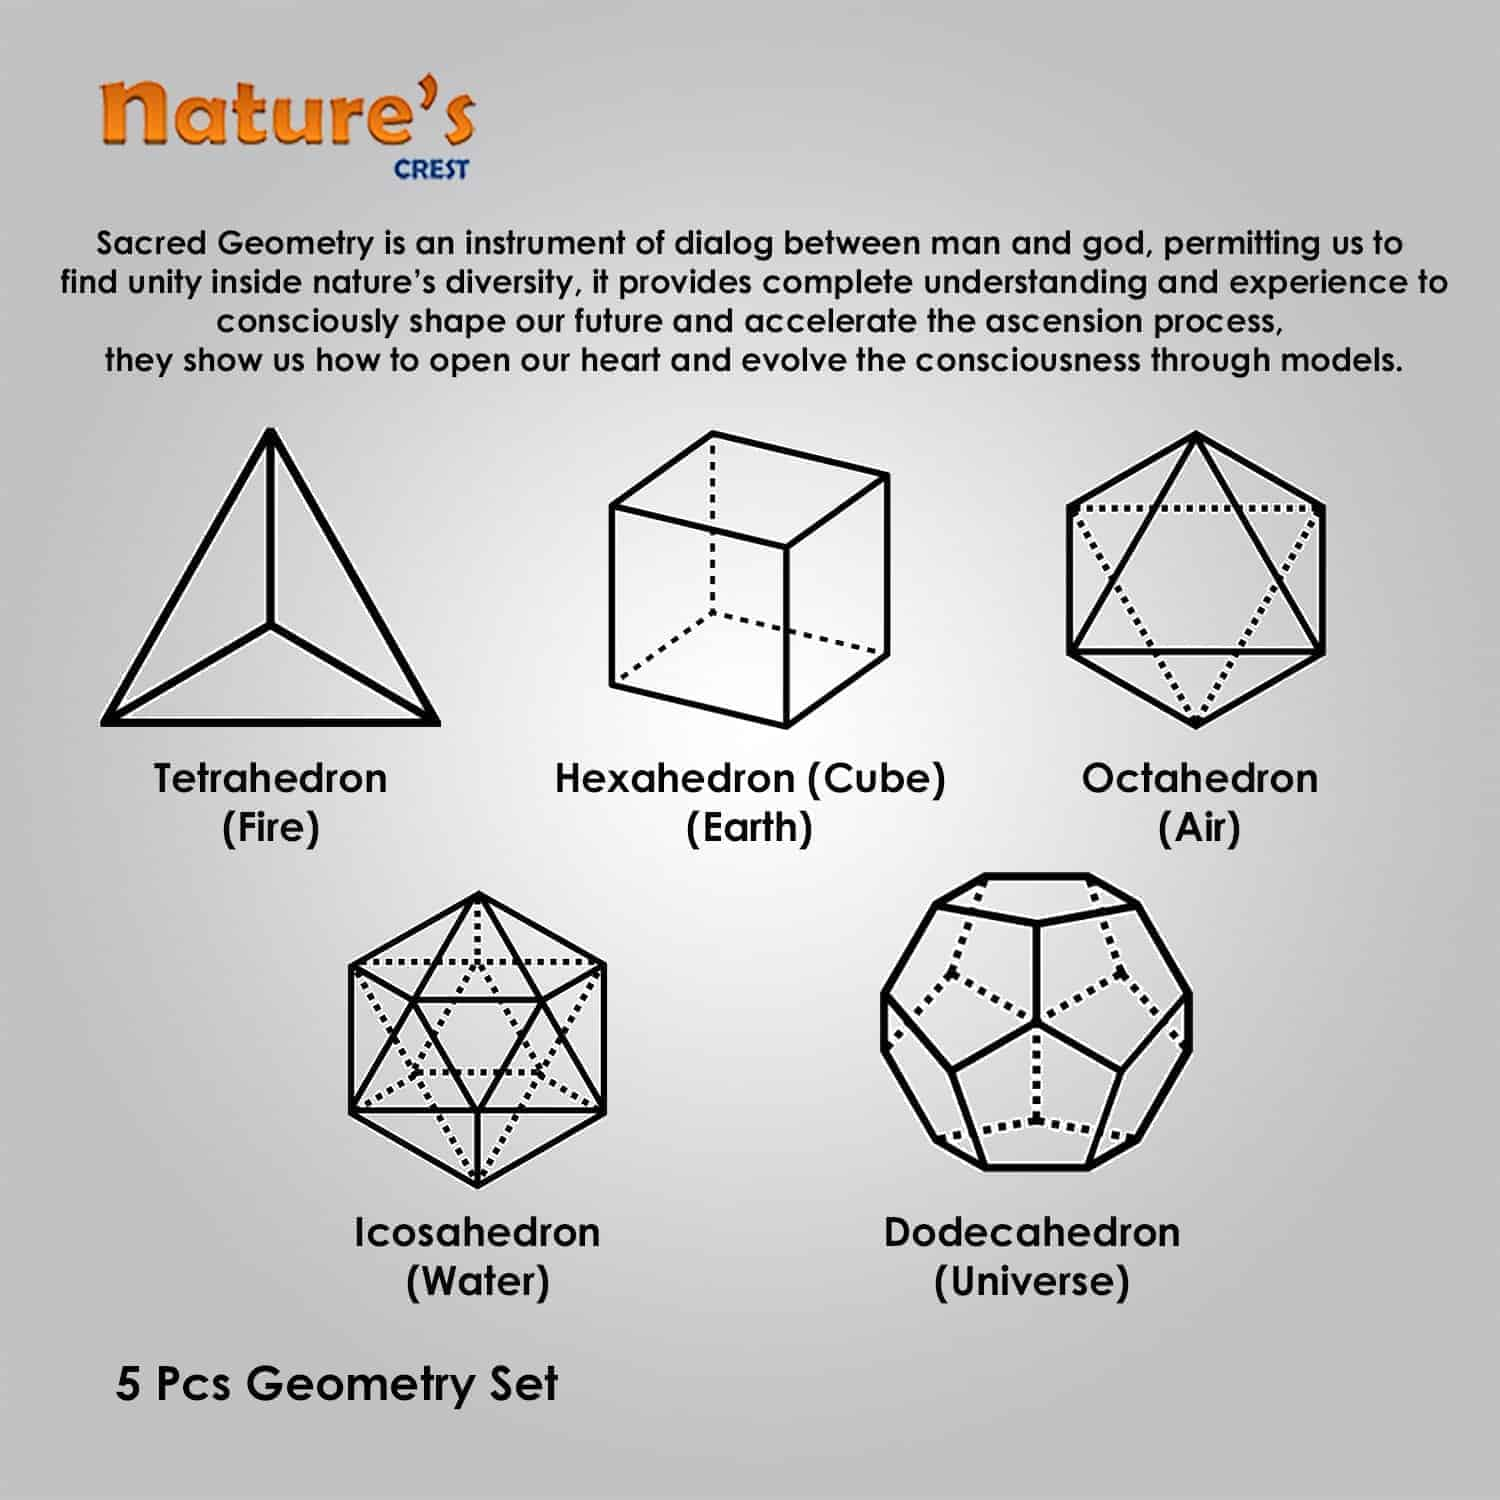 Rose Quartz Platonic Solids 5 Pcs Set Sacret Geometry Set Nature's Crest GS5003 ₹ 999.00